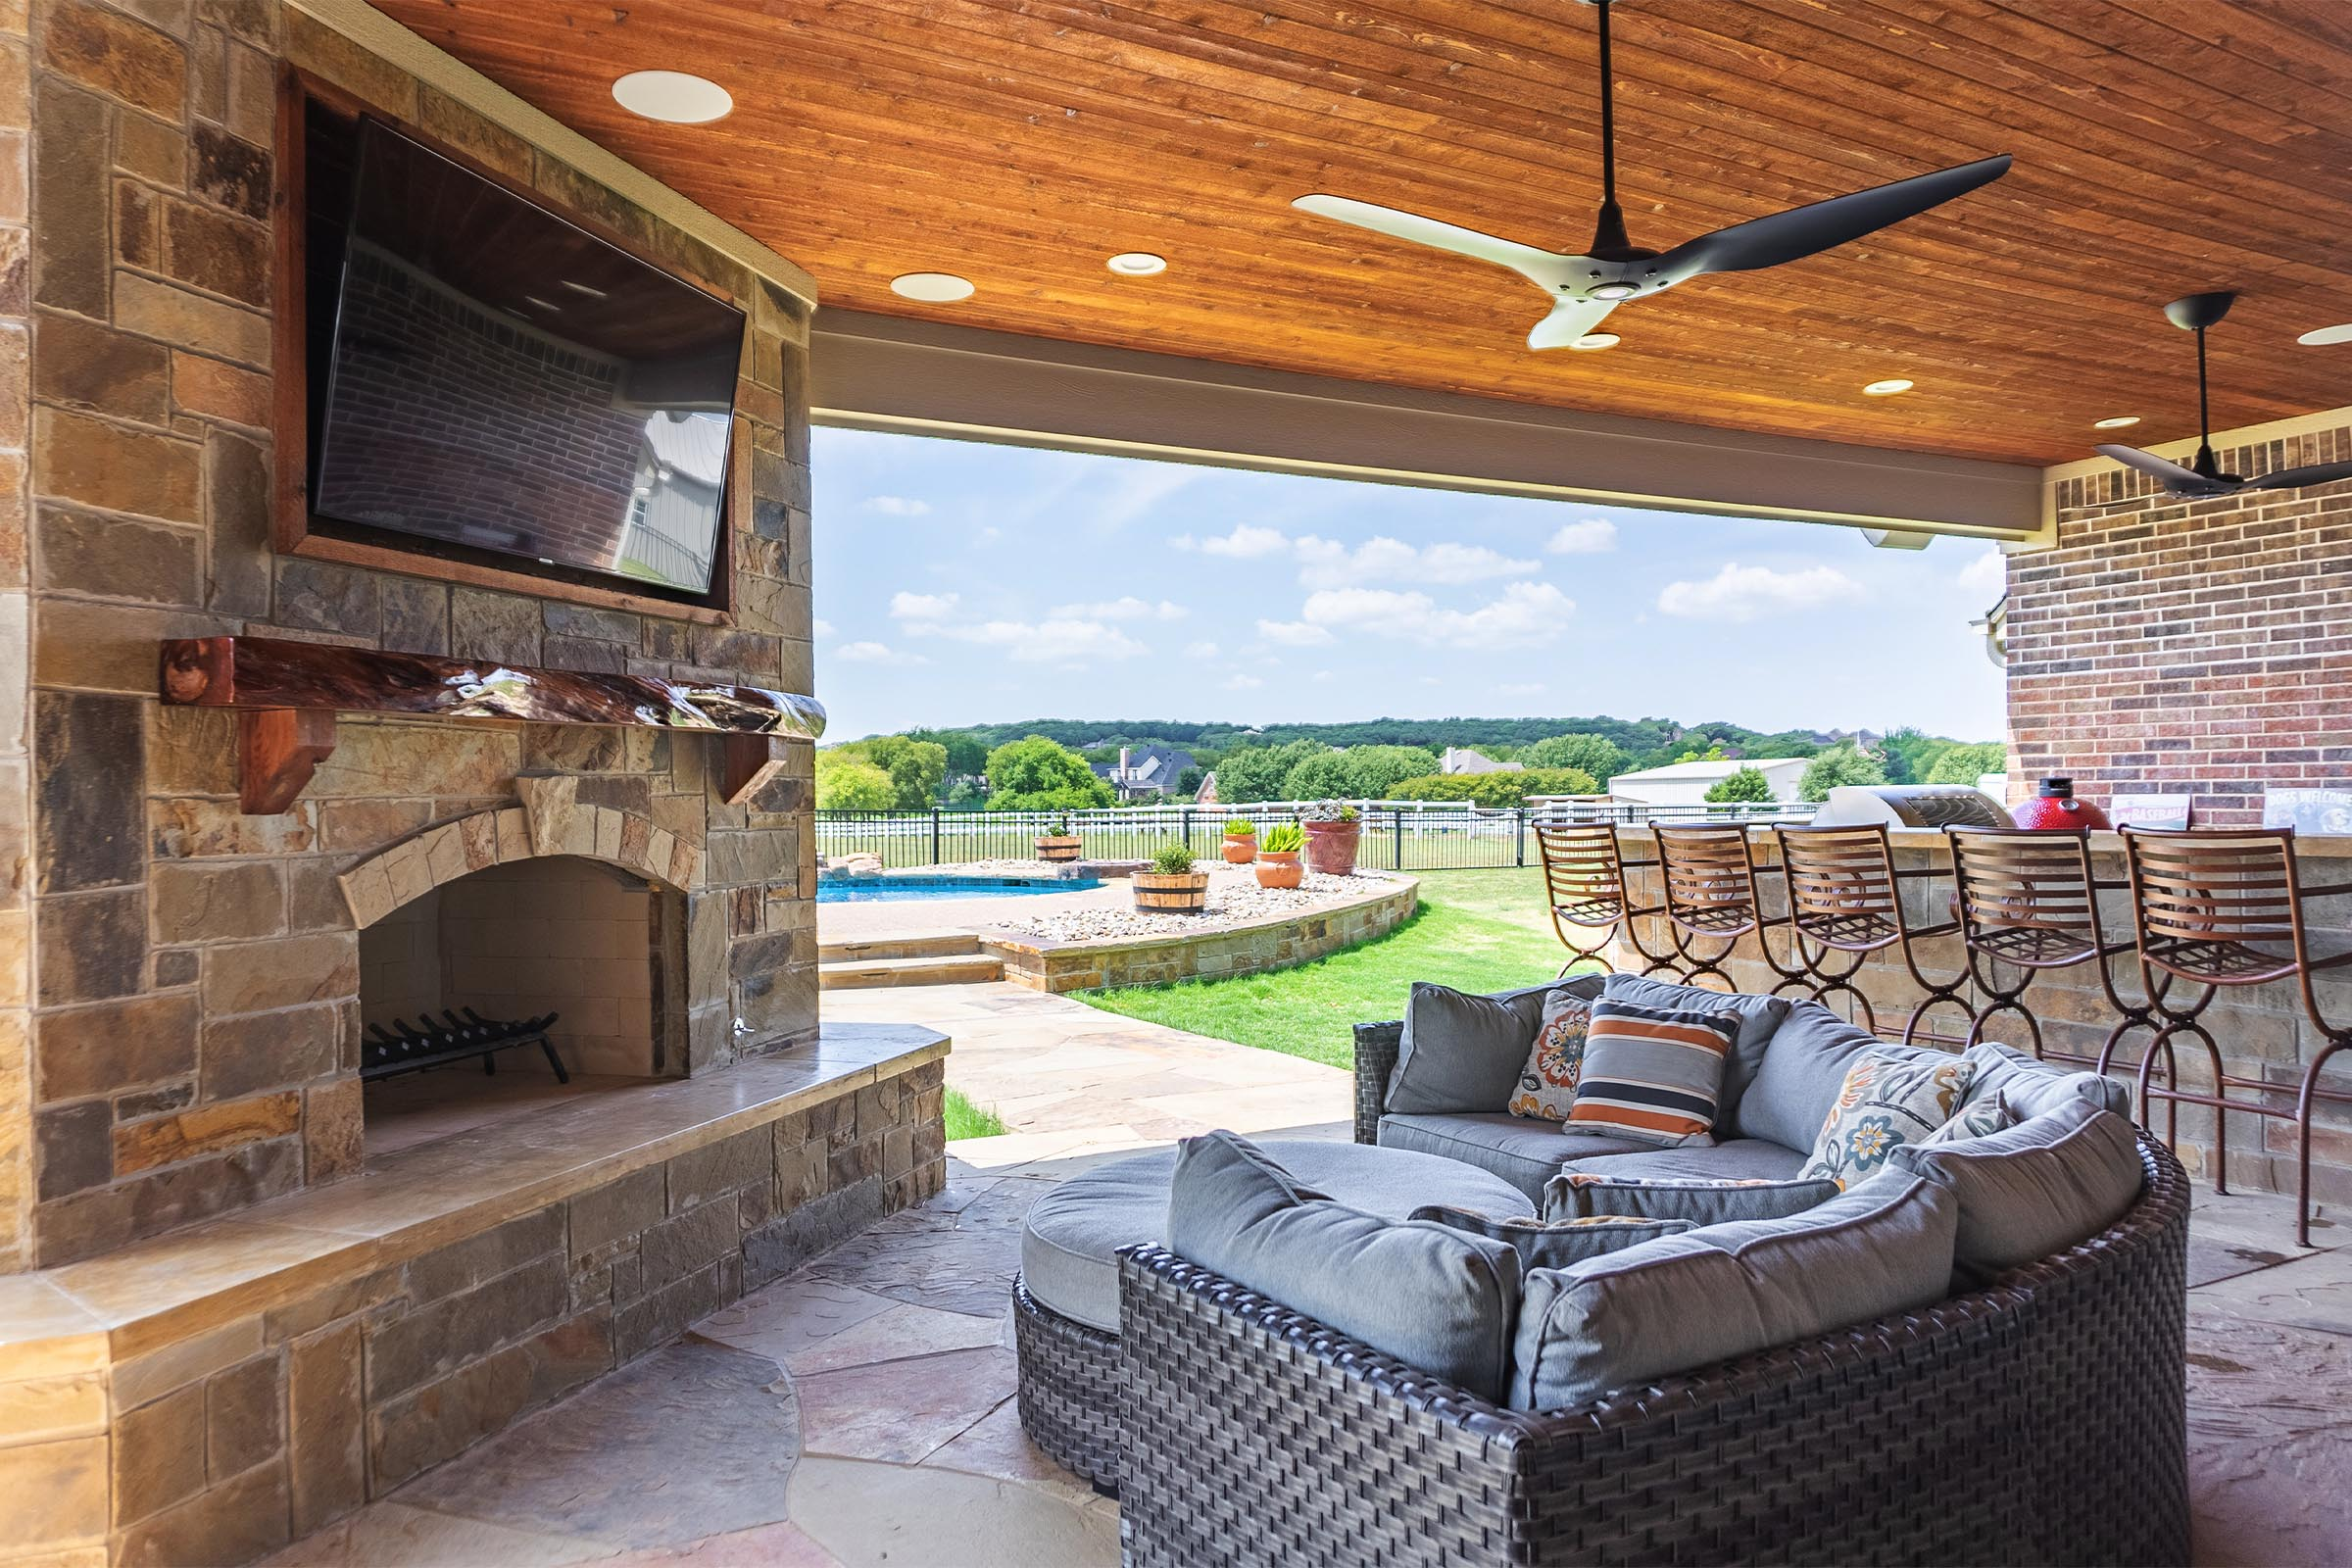 Outdoor Kitchens, Patio Covers | Fort Worth, Burleson TX ... on Dfw Complete Outdoor Living id=56615